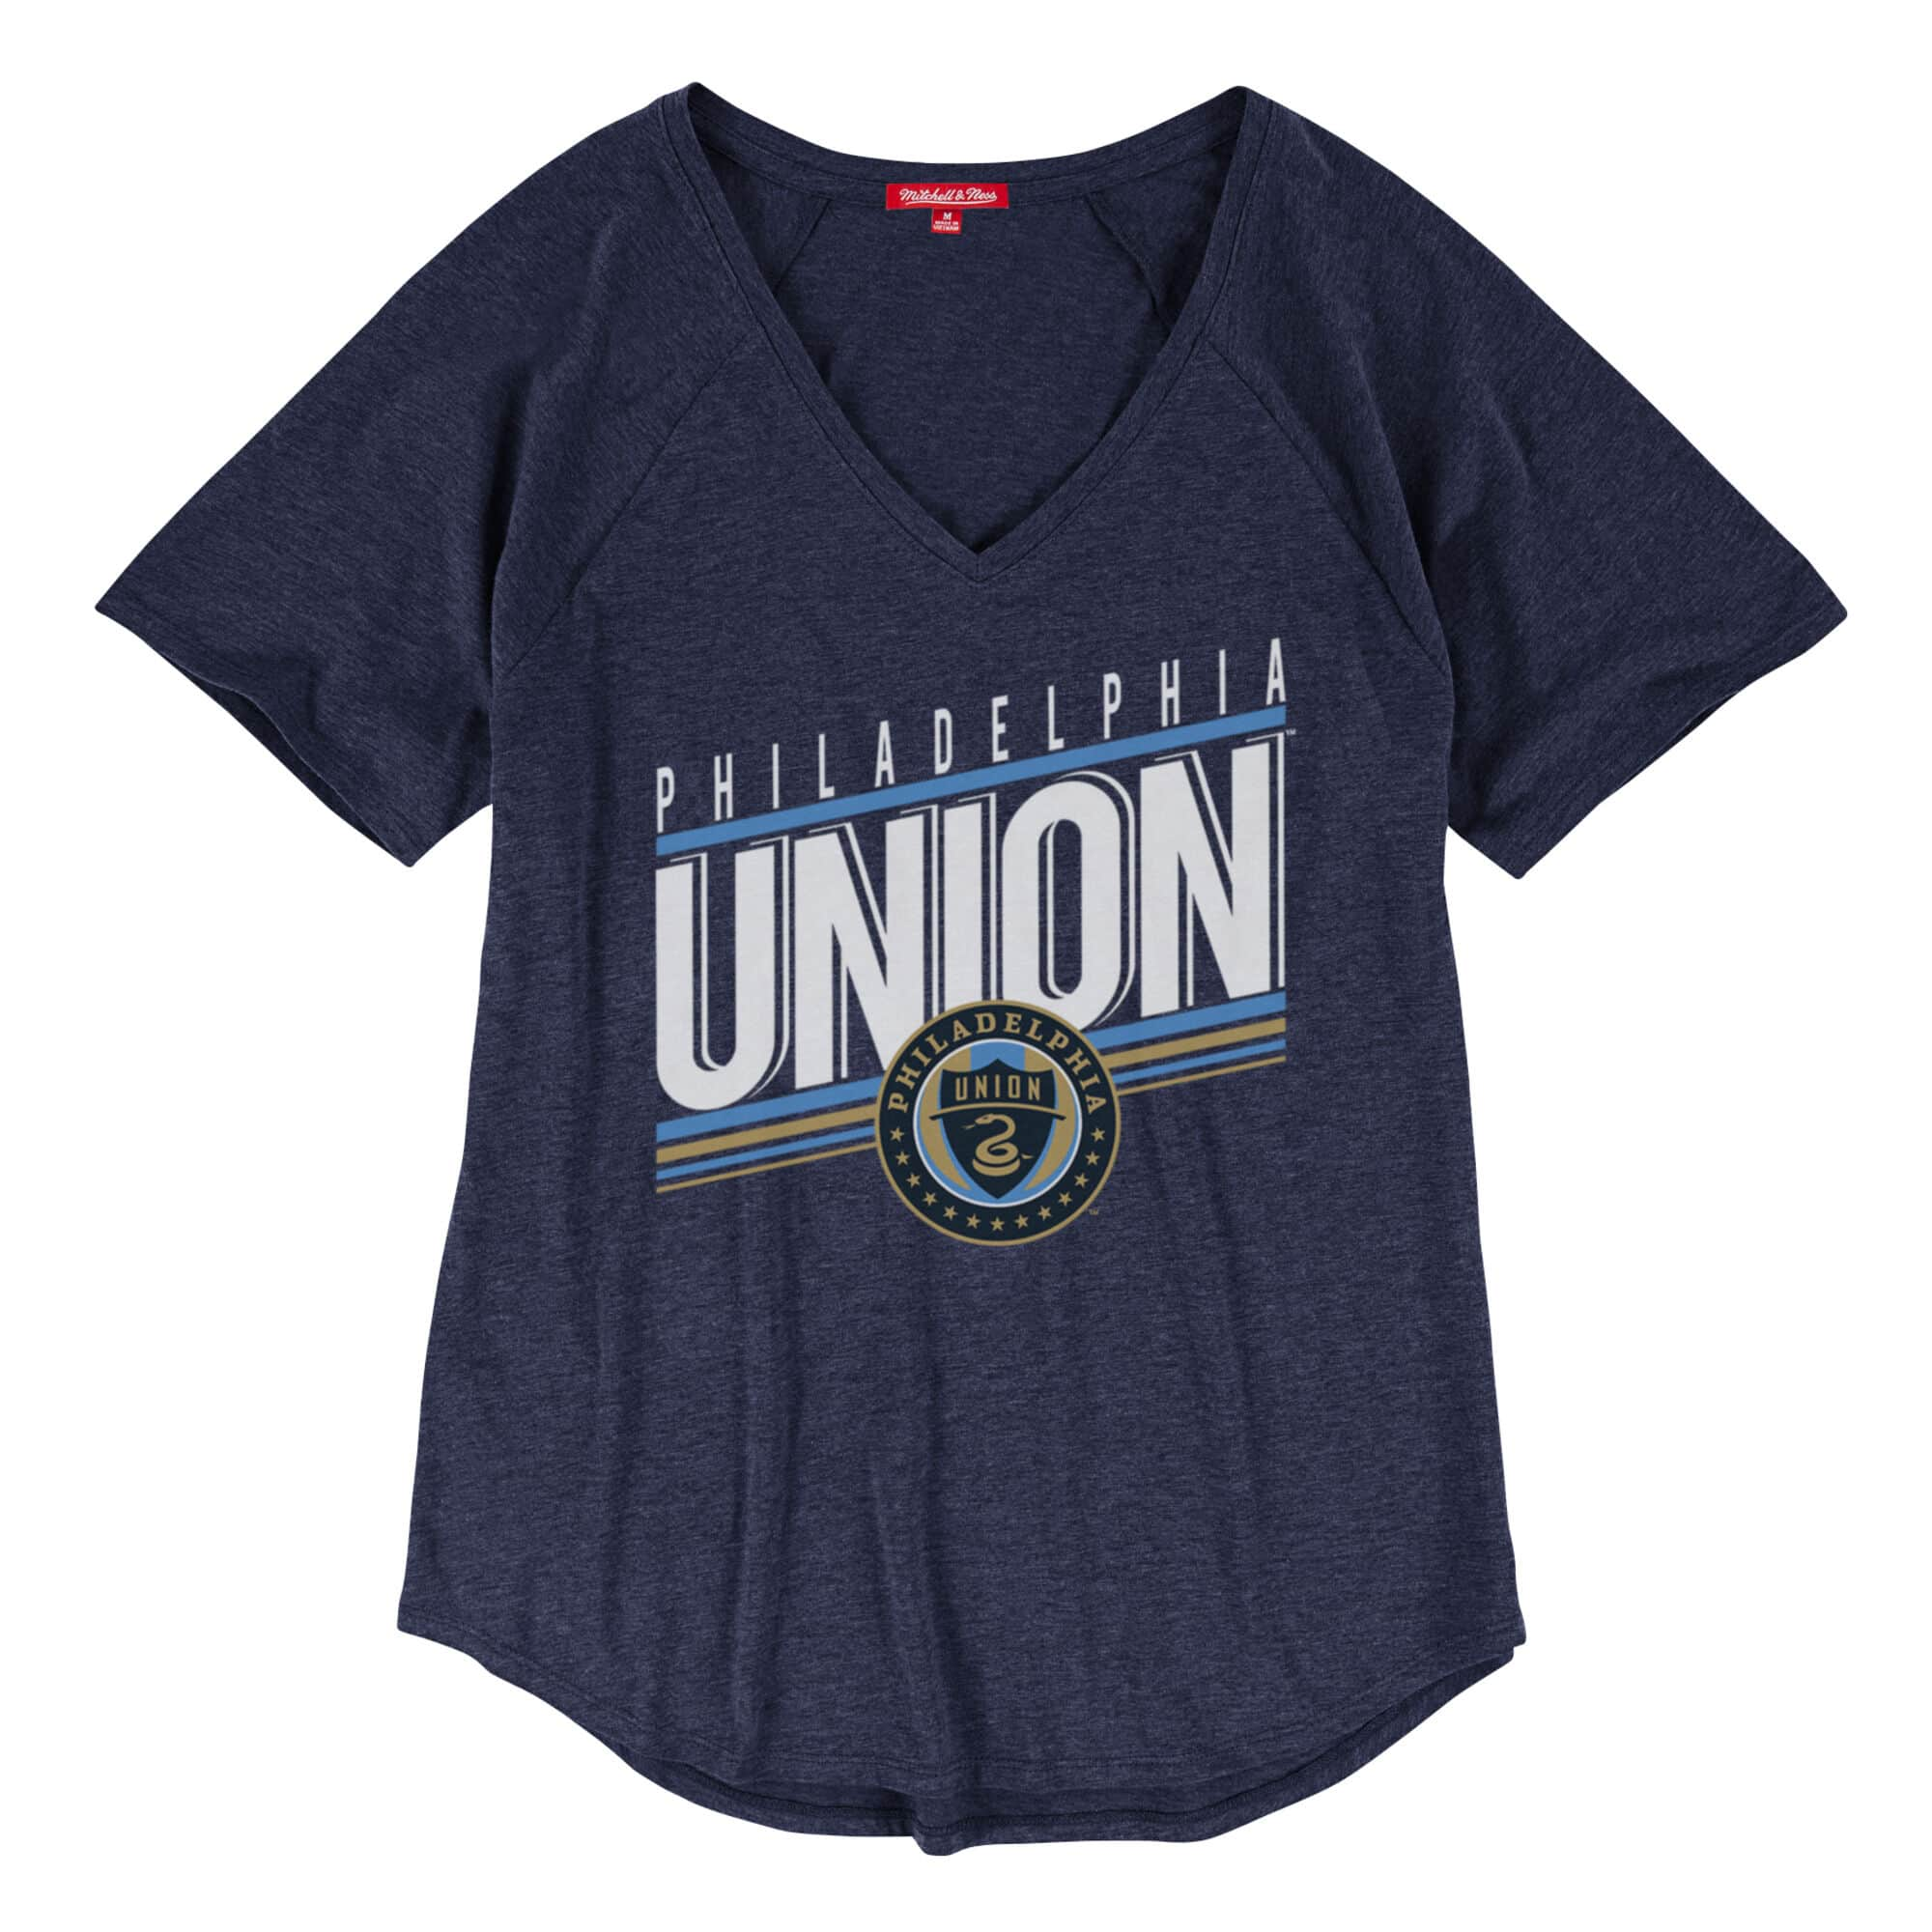 Race to the Finish Women's V-Neck Tee Philadelphia Union